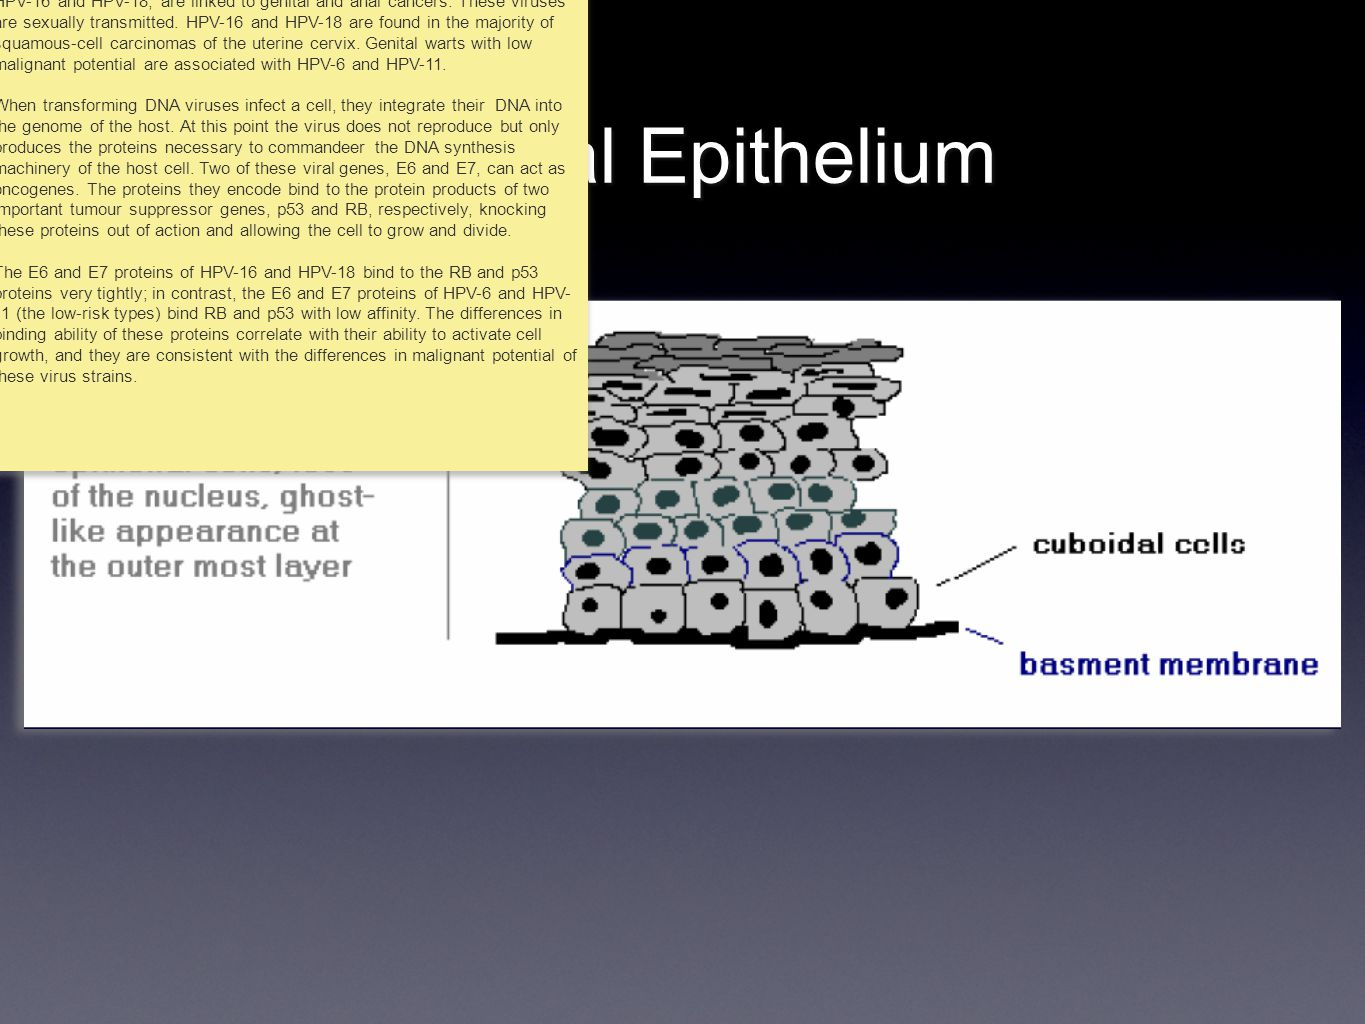 Normal Epithelium More than 70 types of human papillomavirus (HPV) have been described.